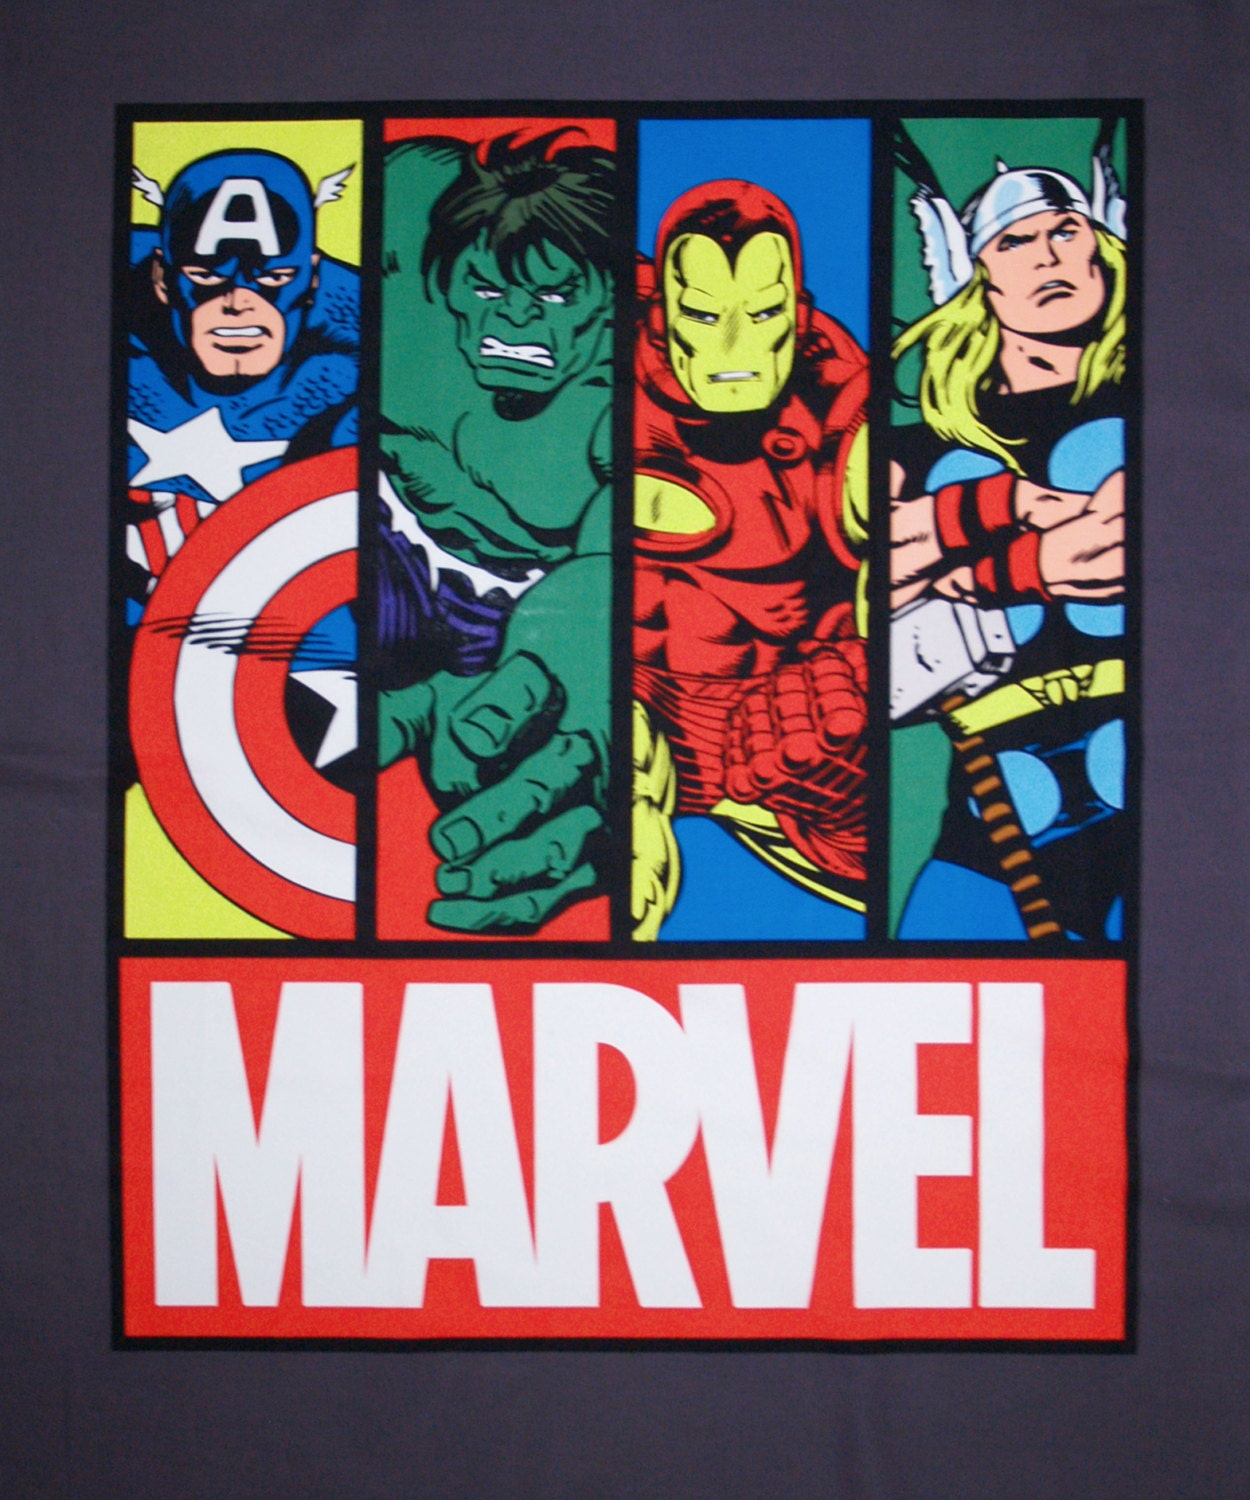 MARVEL Avengers Cotton Fabric Panel 43x36 Springs